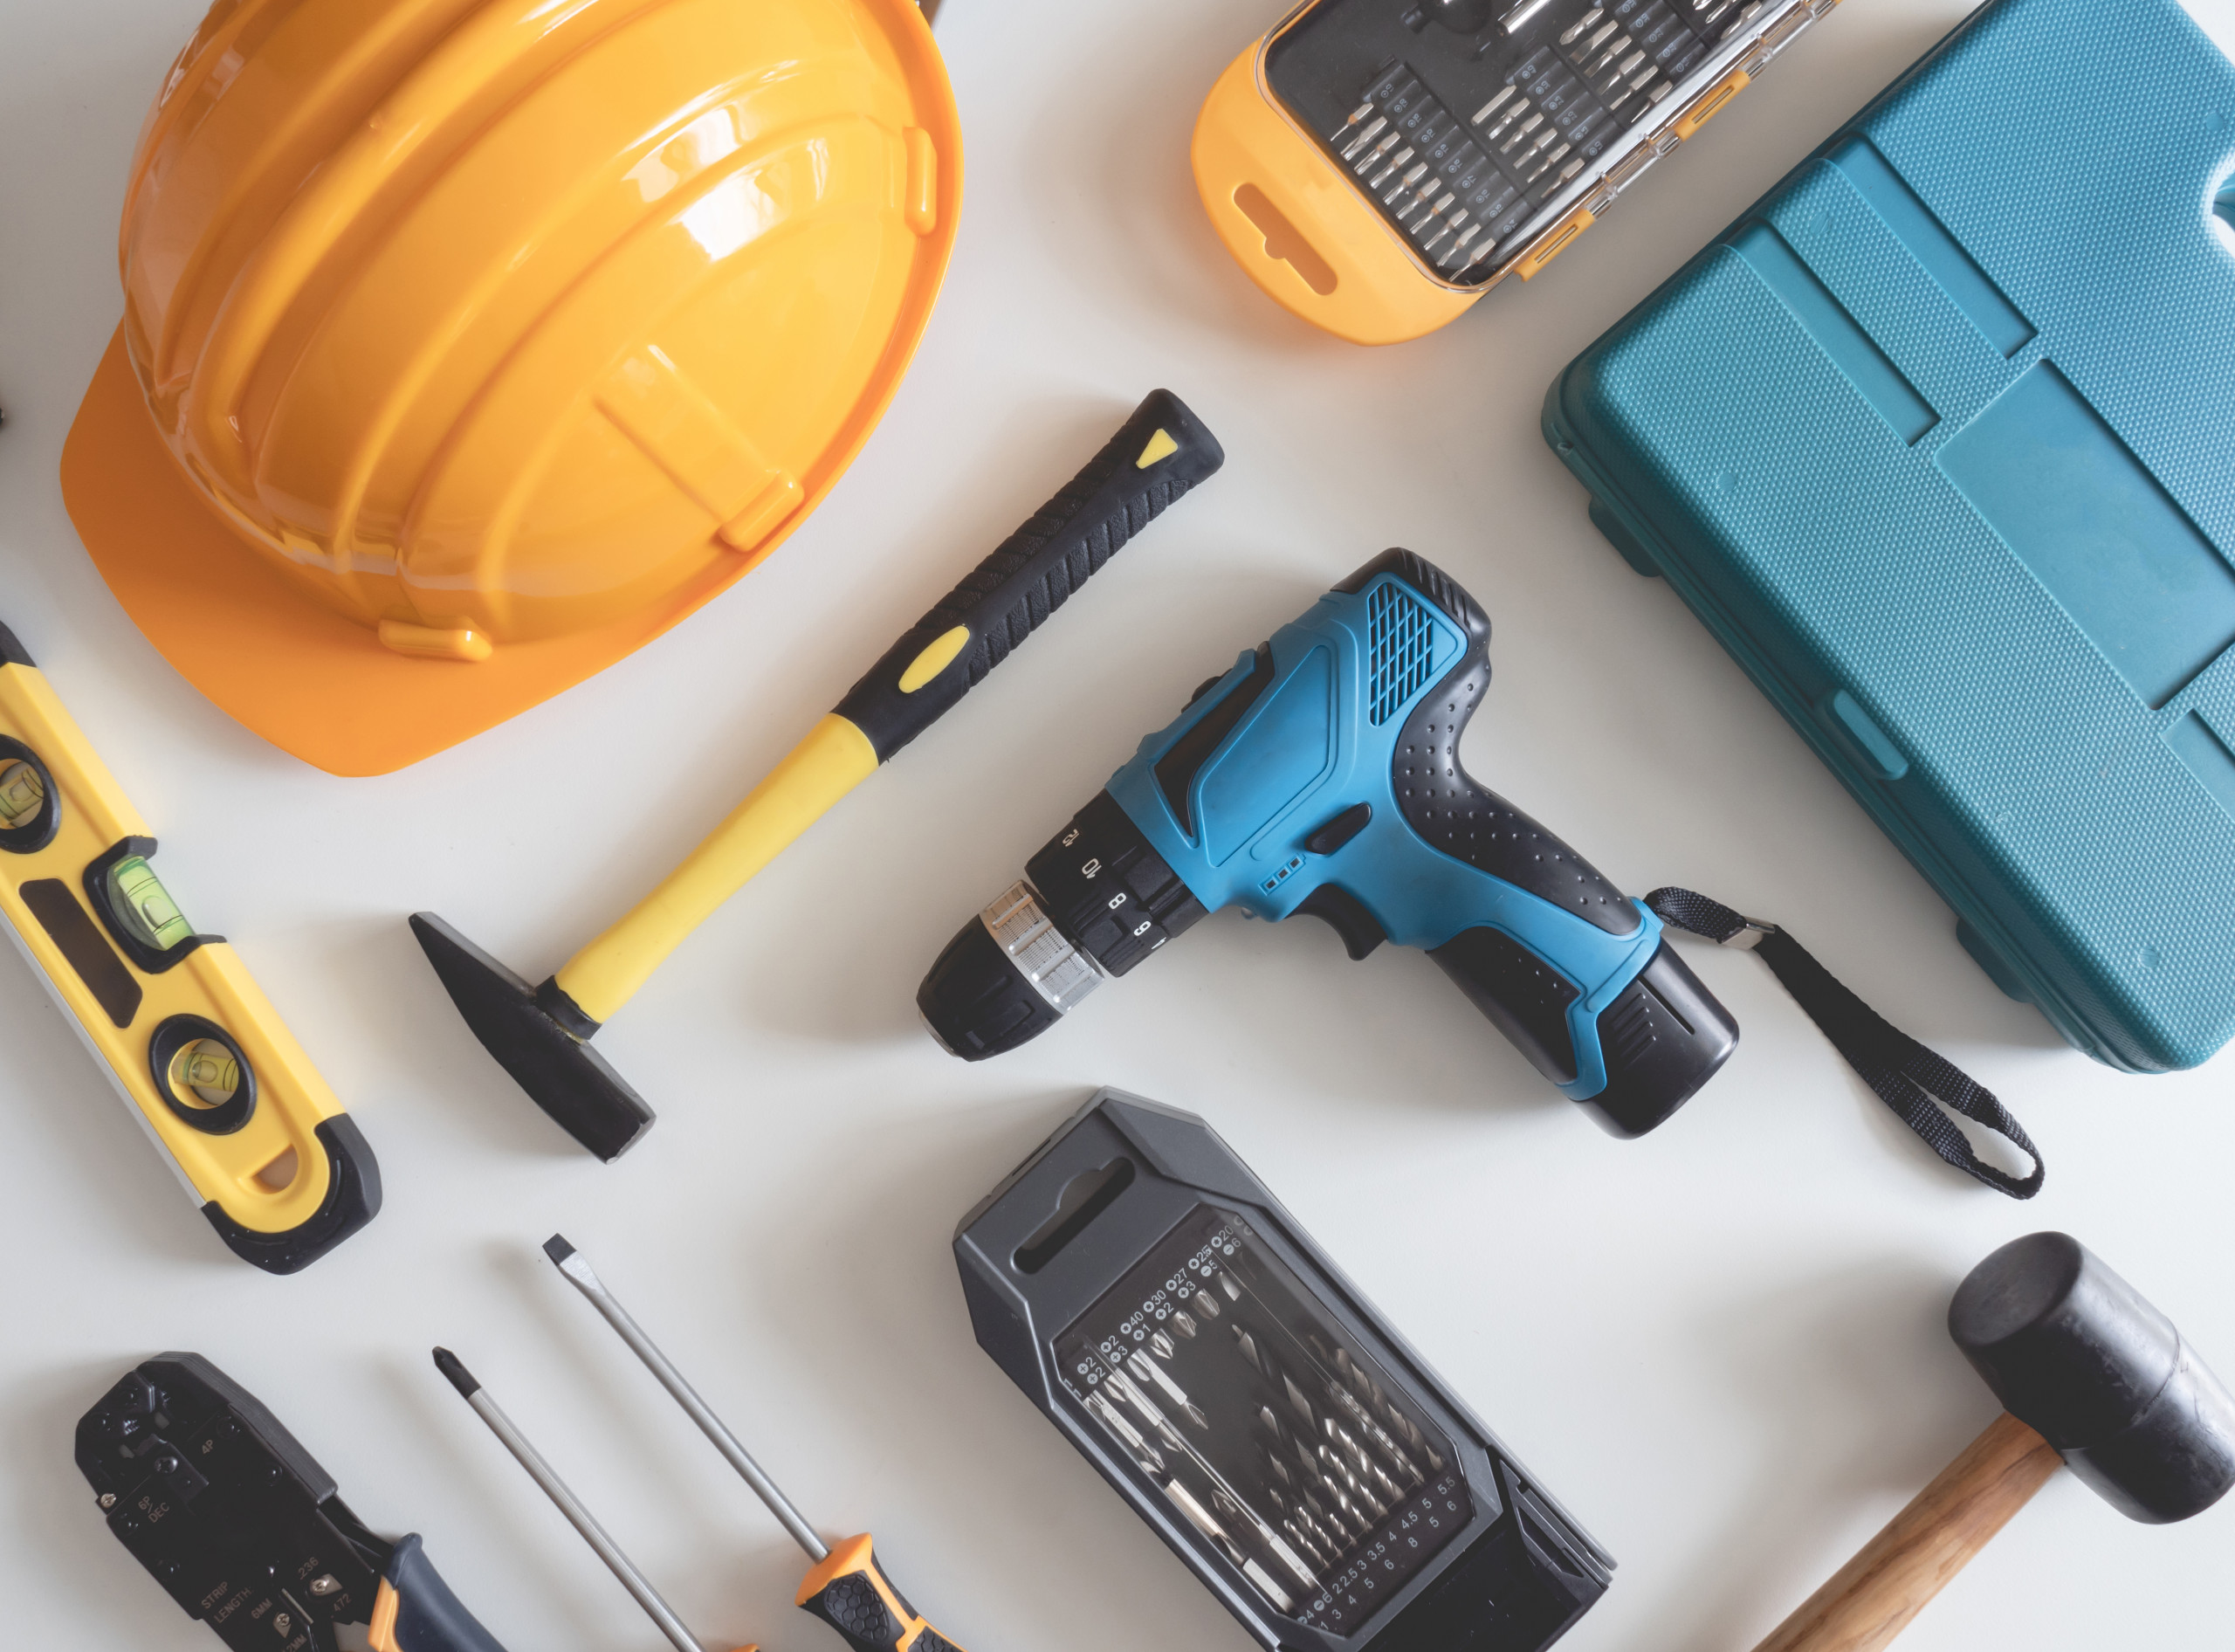 Our DIY services for *all your work